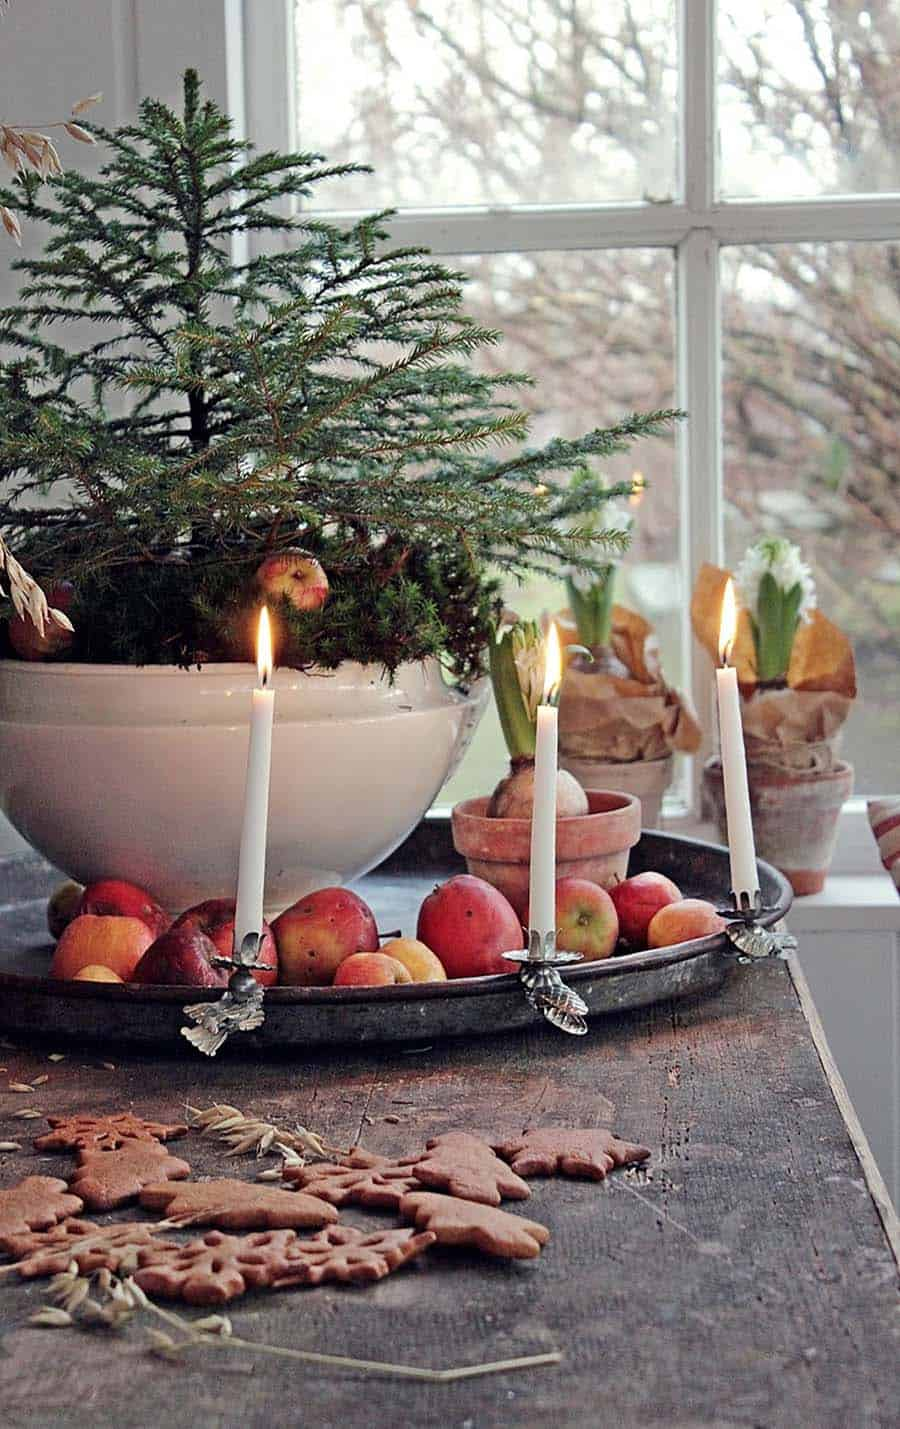 Inspiring Christmas Decorating Ideas-16-1 Kindesign